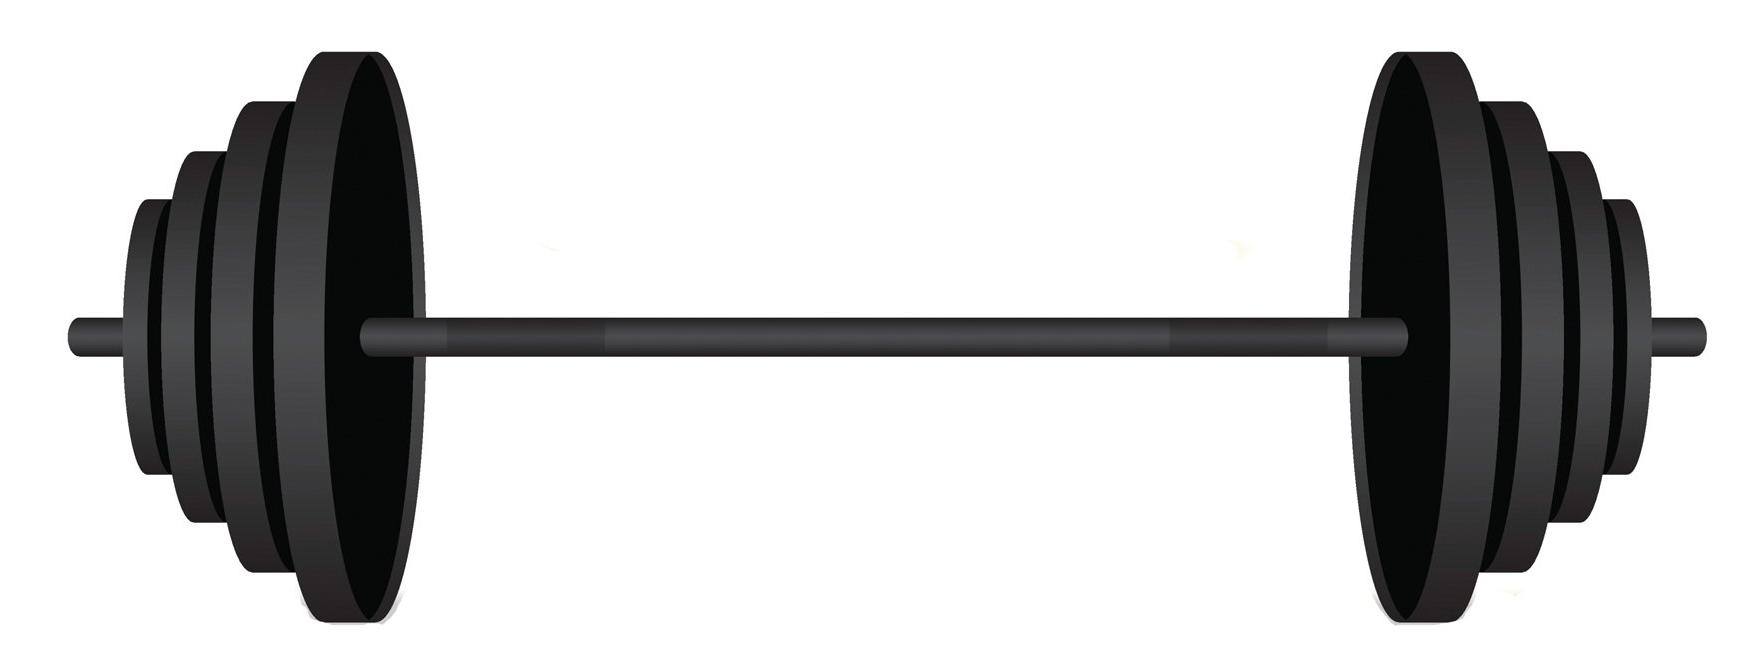 Black clipart barbell. Station